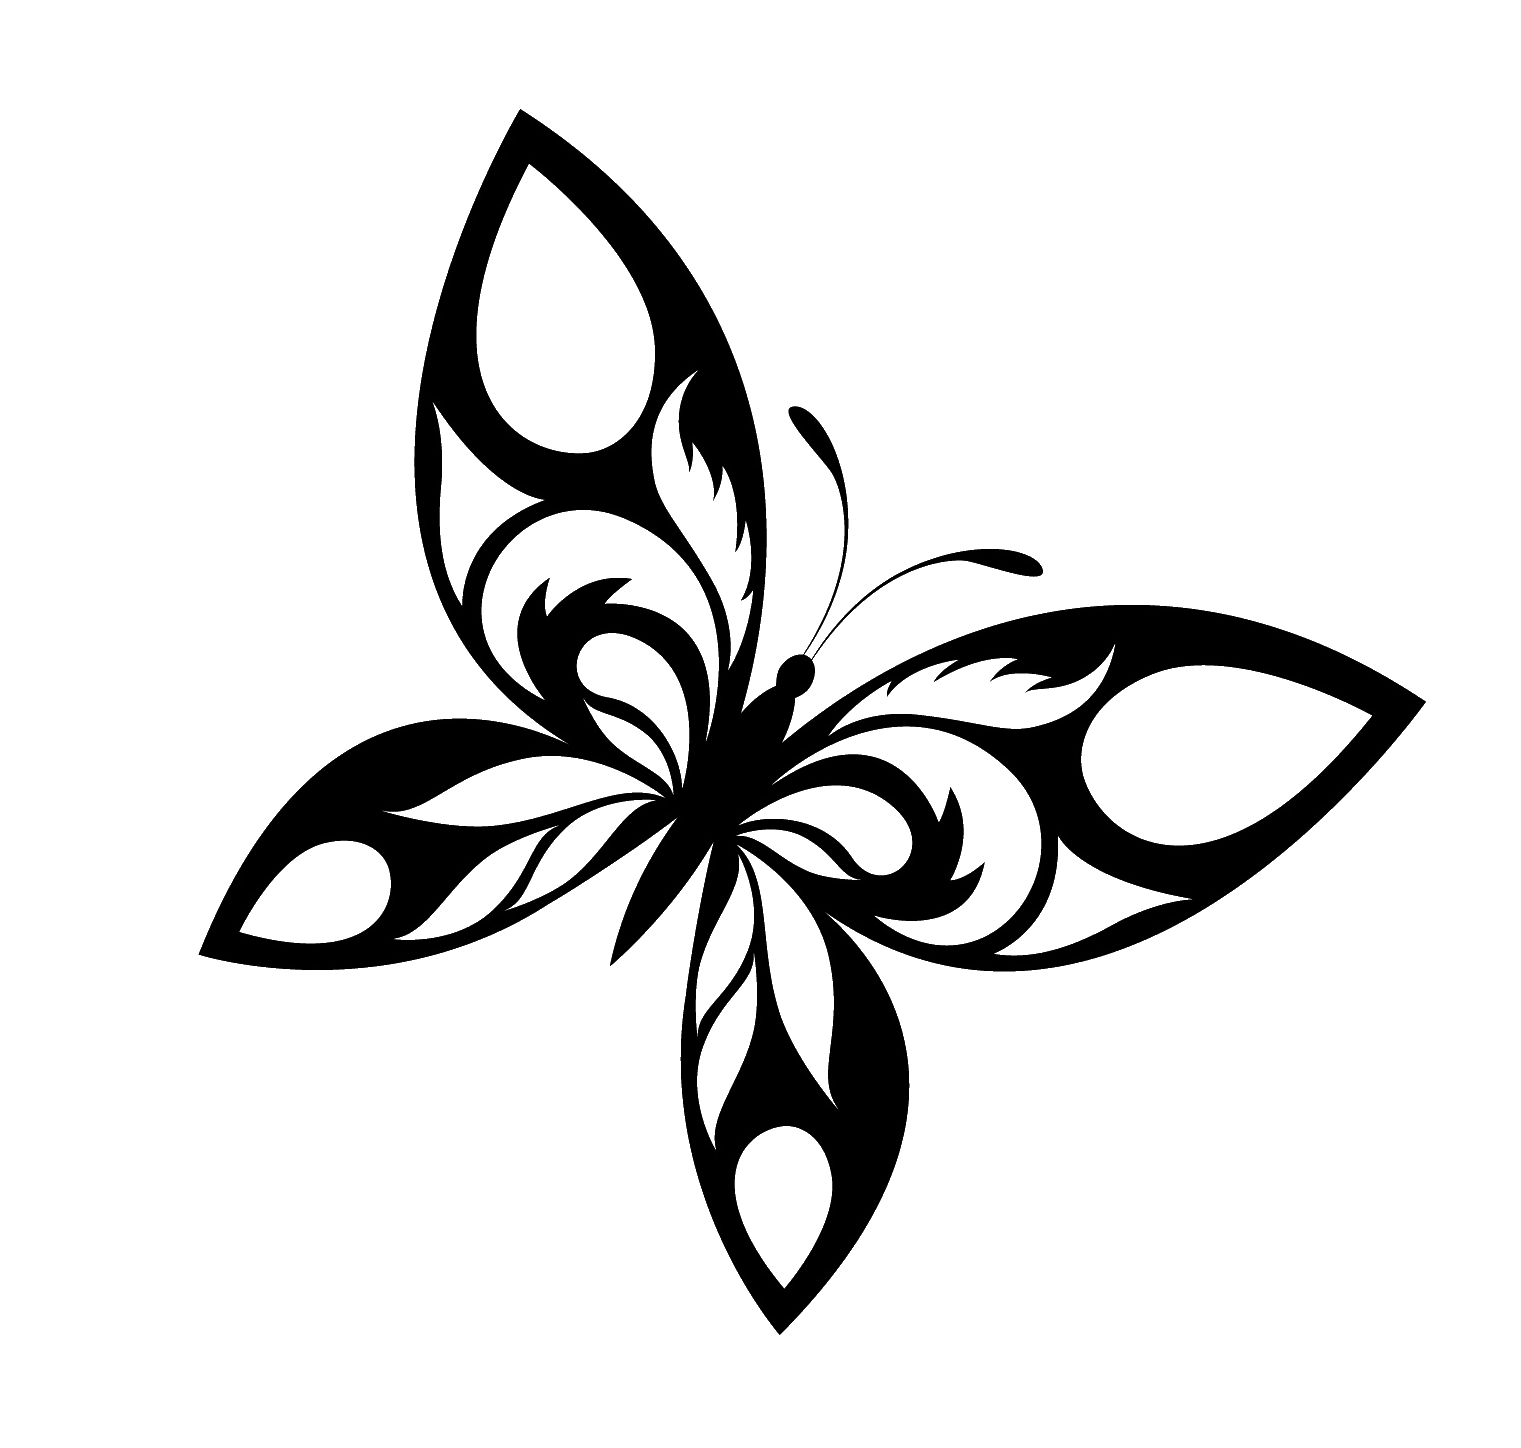 Drawing desings butterfly. Designs black and white